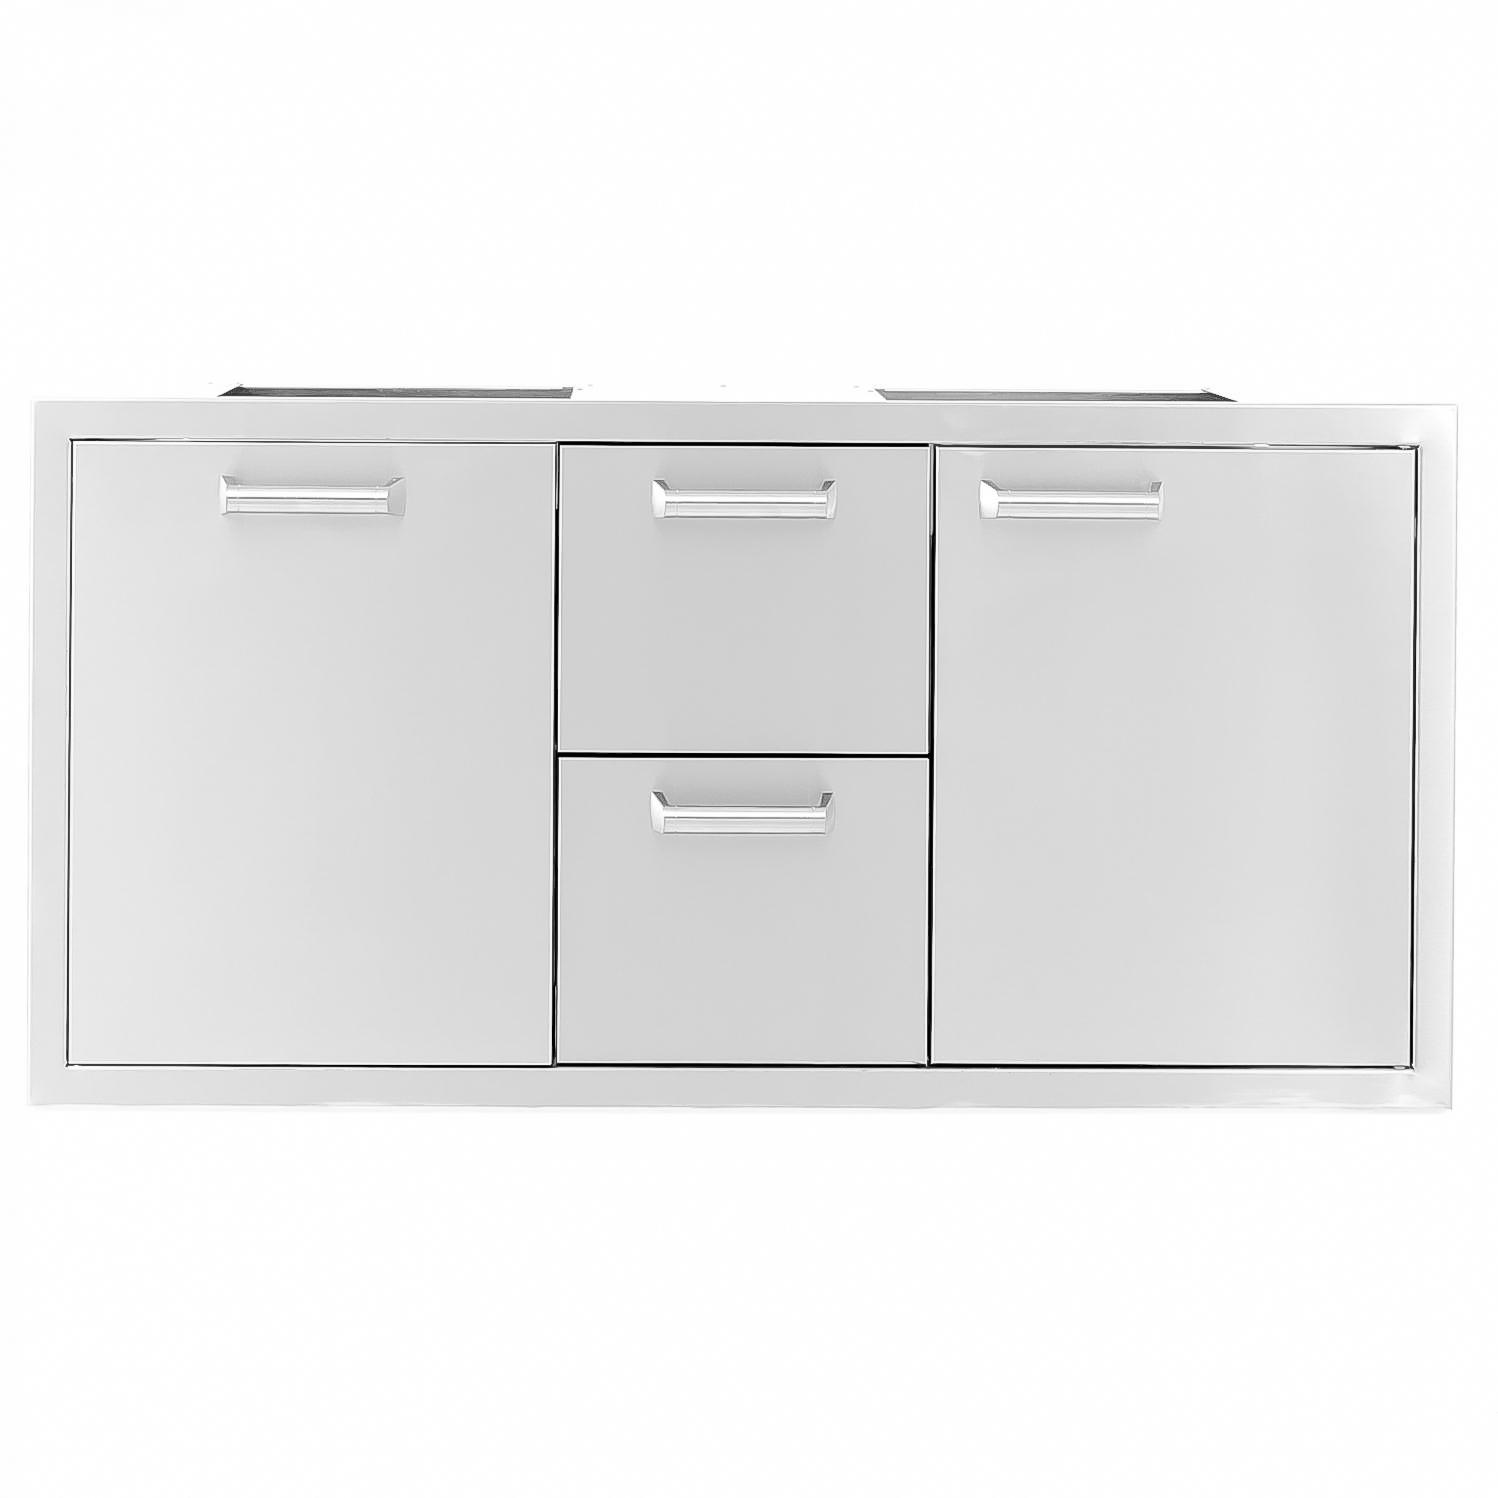 Sonoma Series 42 Inch Stainless Steel Door Double Drawer Roll Out Trash Bin Combo Stainless Steel Doors Steel Doors Trash Bins